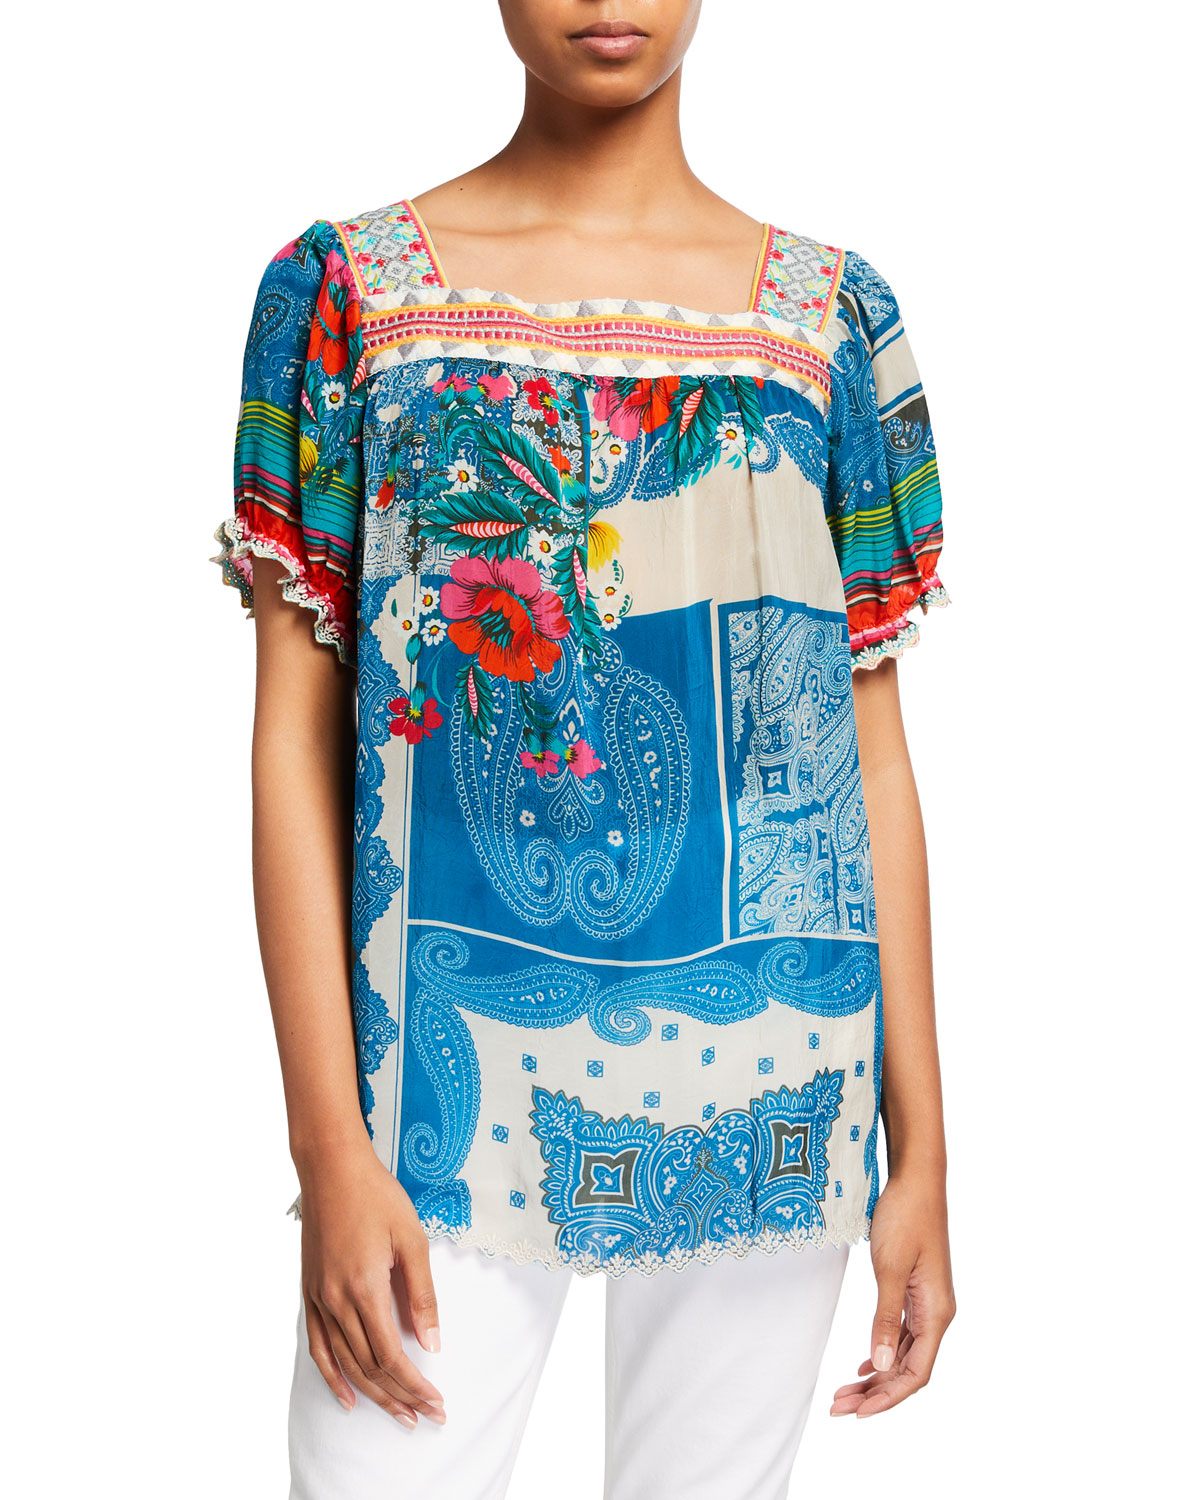 Johnny Was HILARY PAISLEY FLORAL SHORT-SLEEVE TOP